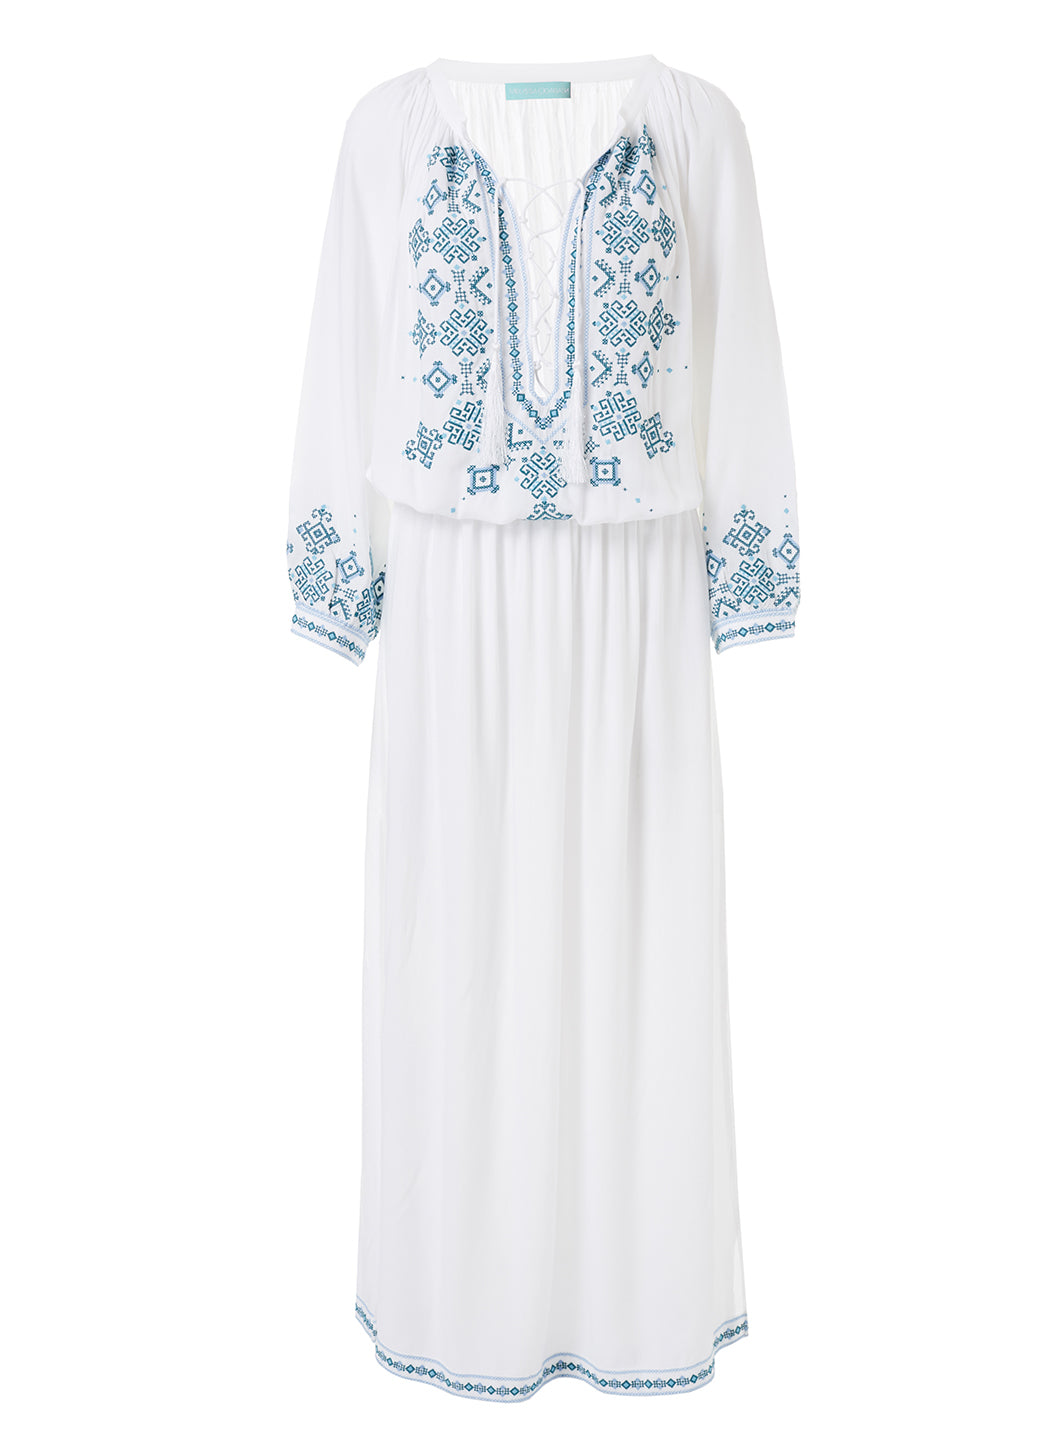 Sienna White/Mint Embroidered 3/4 Sleeve Maxi Dress  - Melissa Odabash Dresses & Kaftans